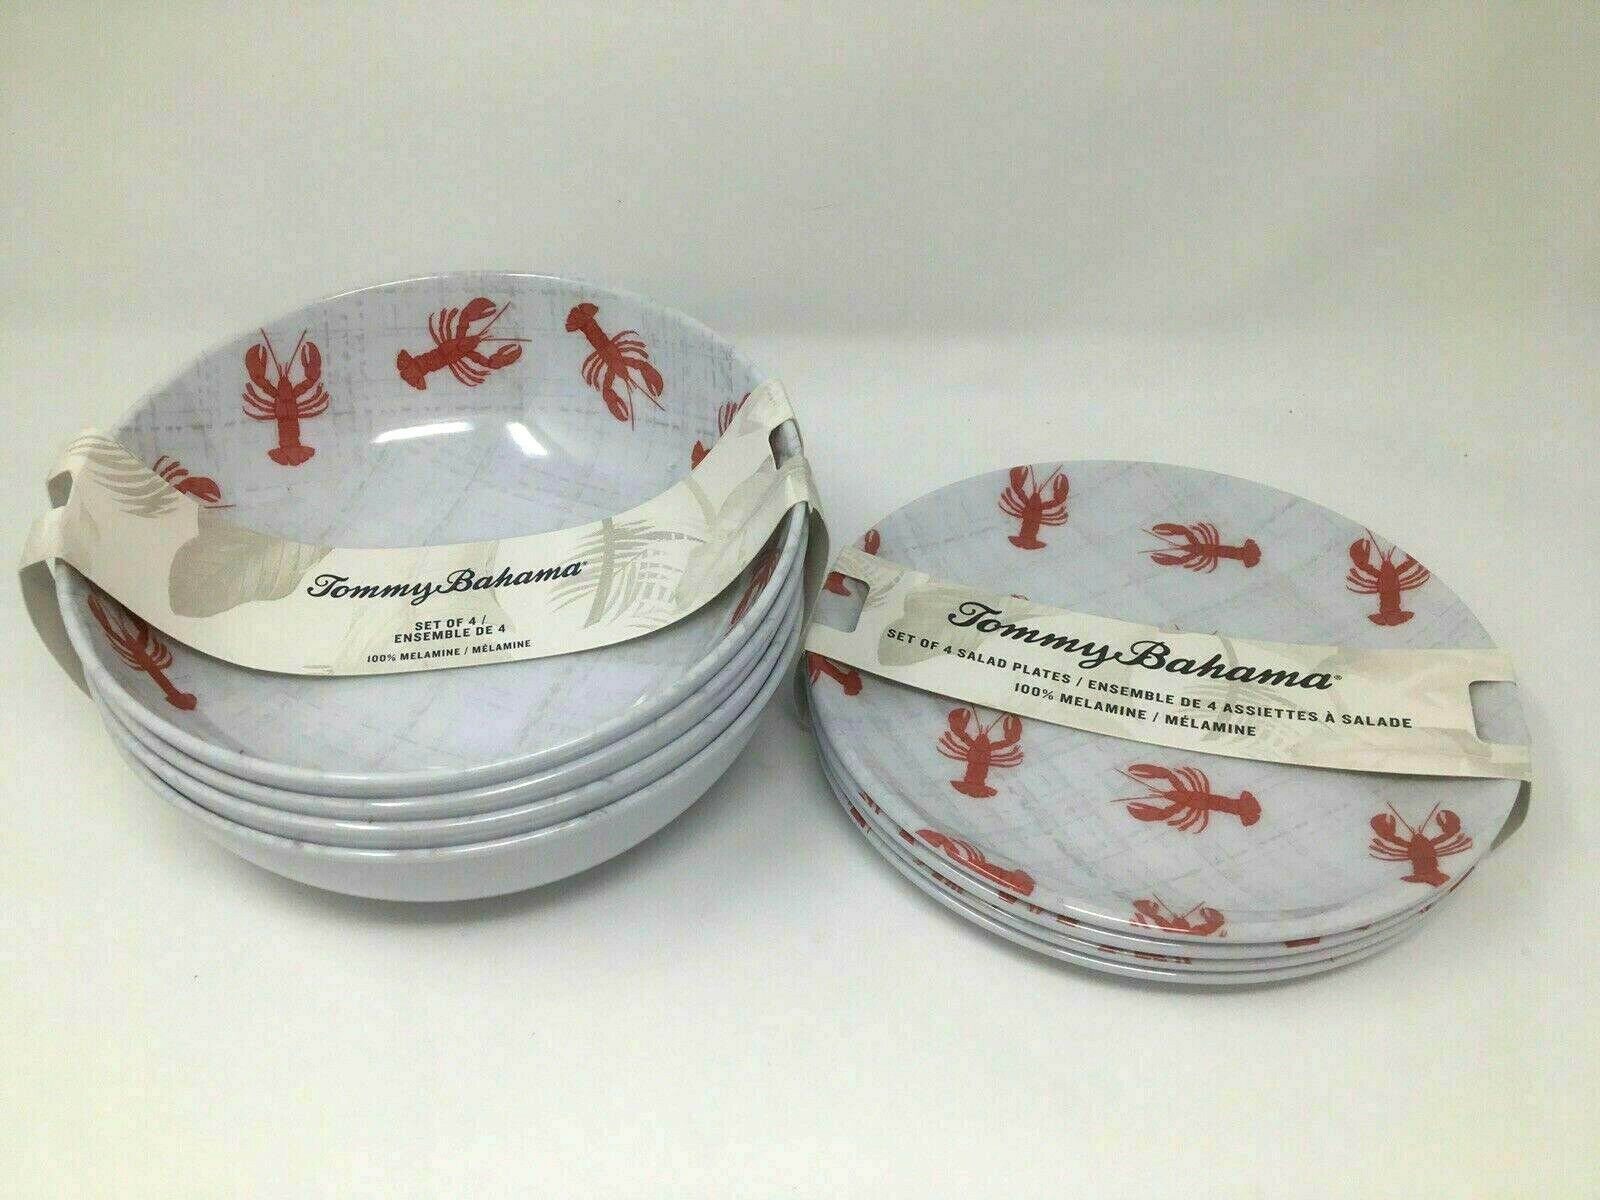 Tommy Bahama Melamine Indoor / Outdoor Dinnerware Sets LOBSTERS (See Choices)  - Dinnerware - Ideas of Dinnerware #Dinnerware #casualdinnerware Tommy Bahama Melamine Indoor / Outdoor Dinnerware Sets LOBSTERS (See Choices)  - Dinnerware - Ideas of Dinnerware #Dinnerware #casualdinnerware